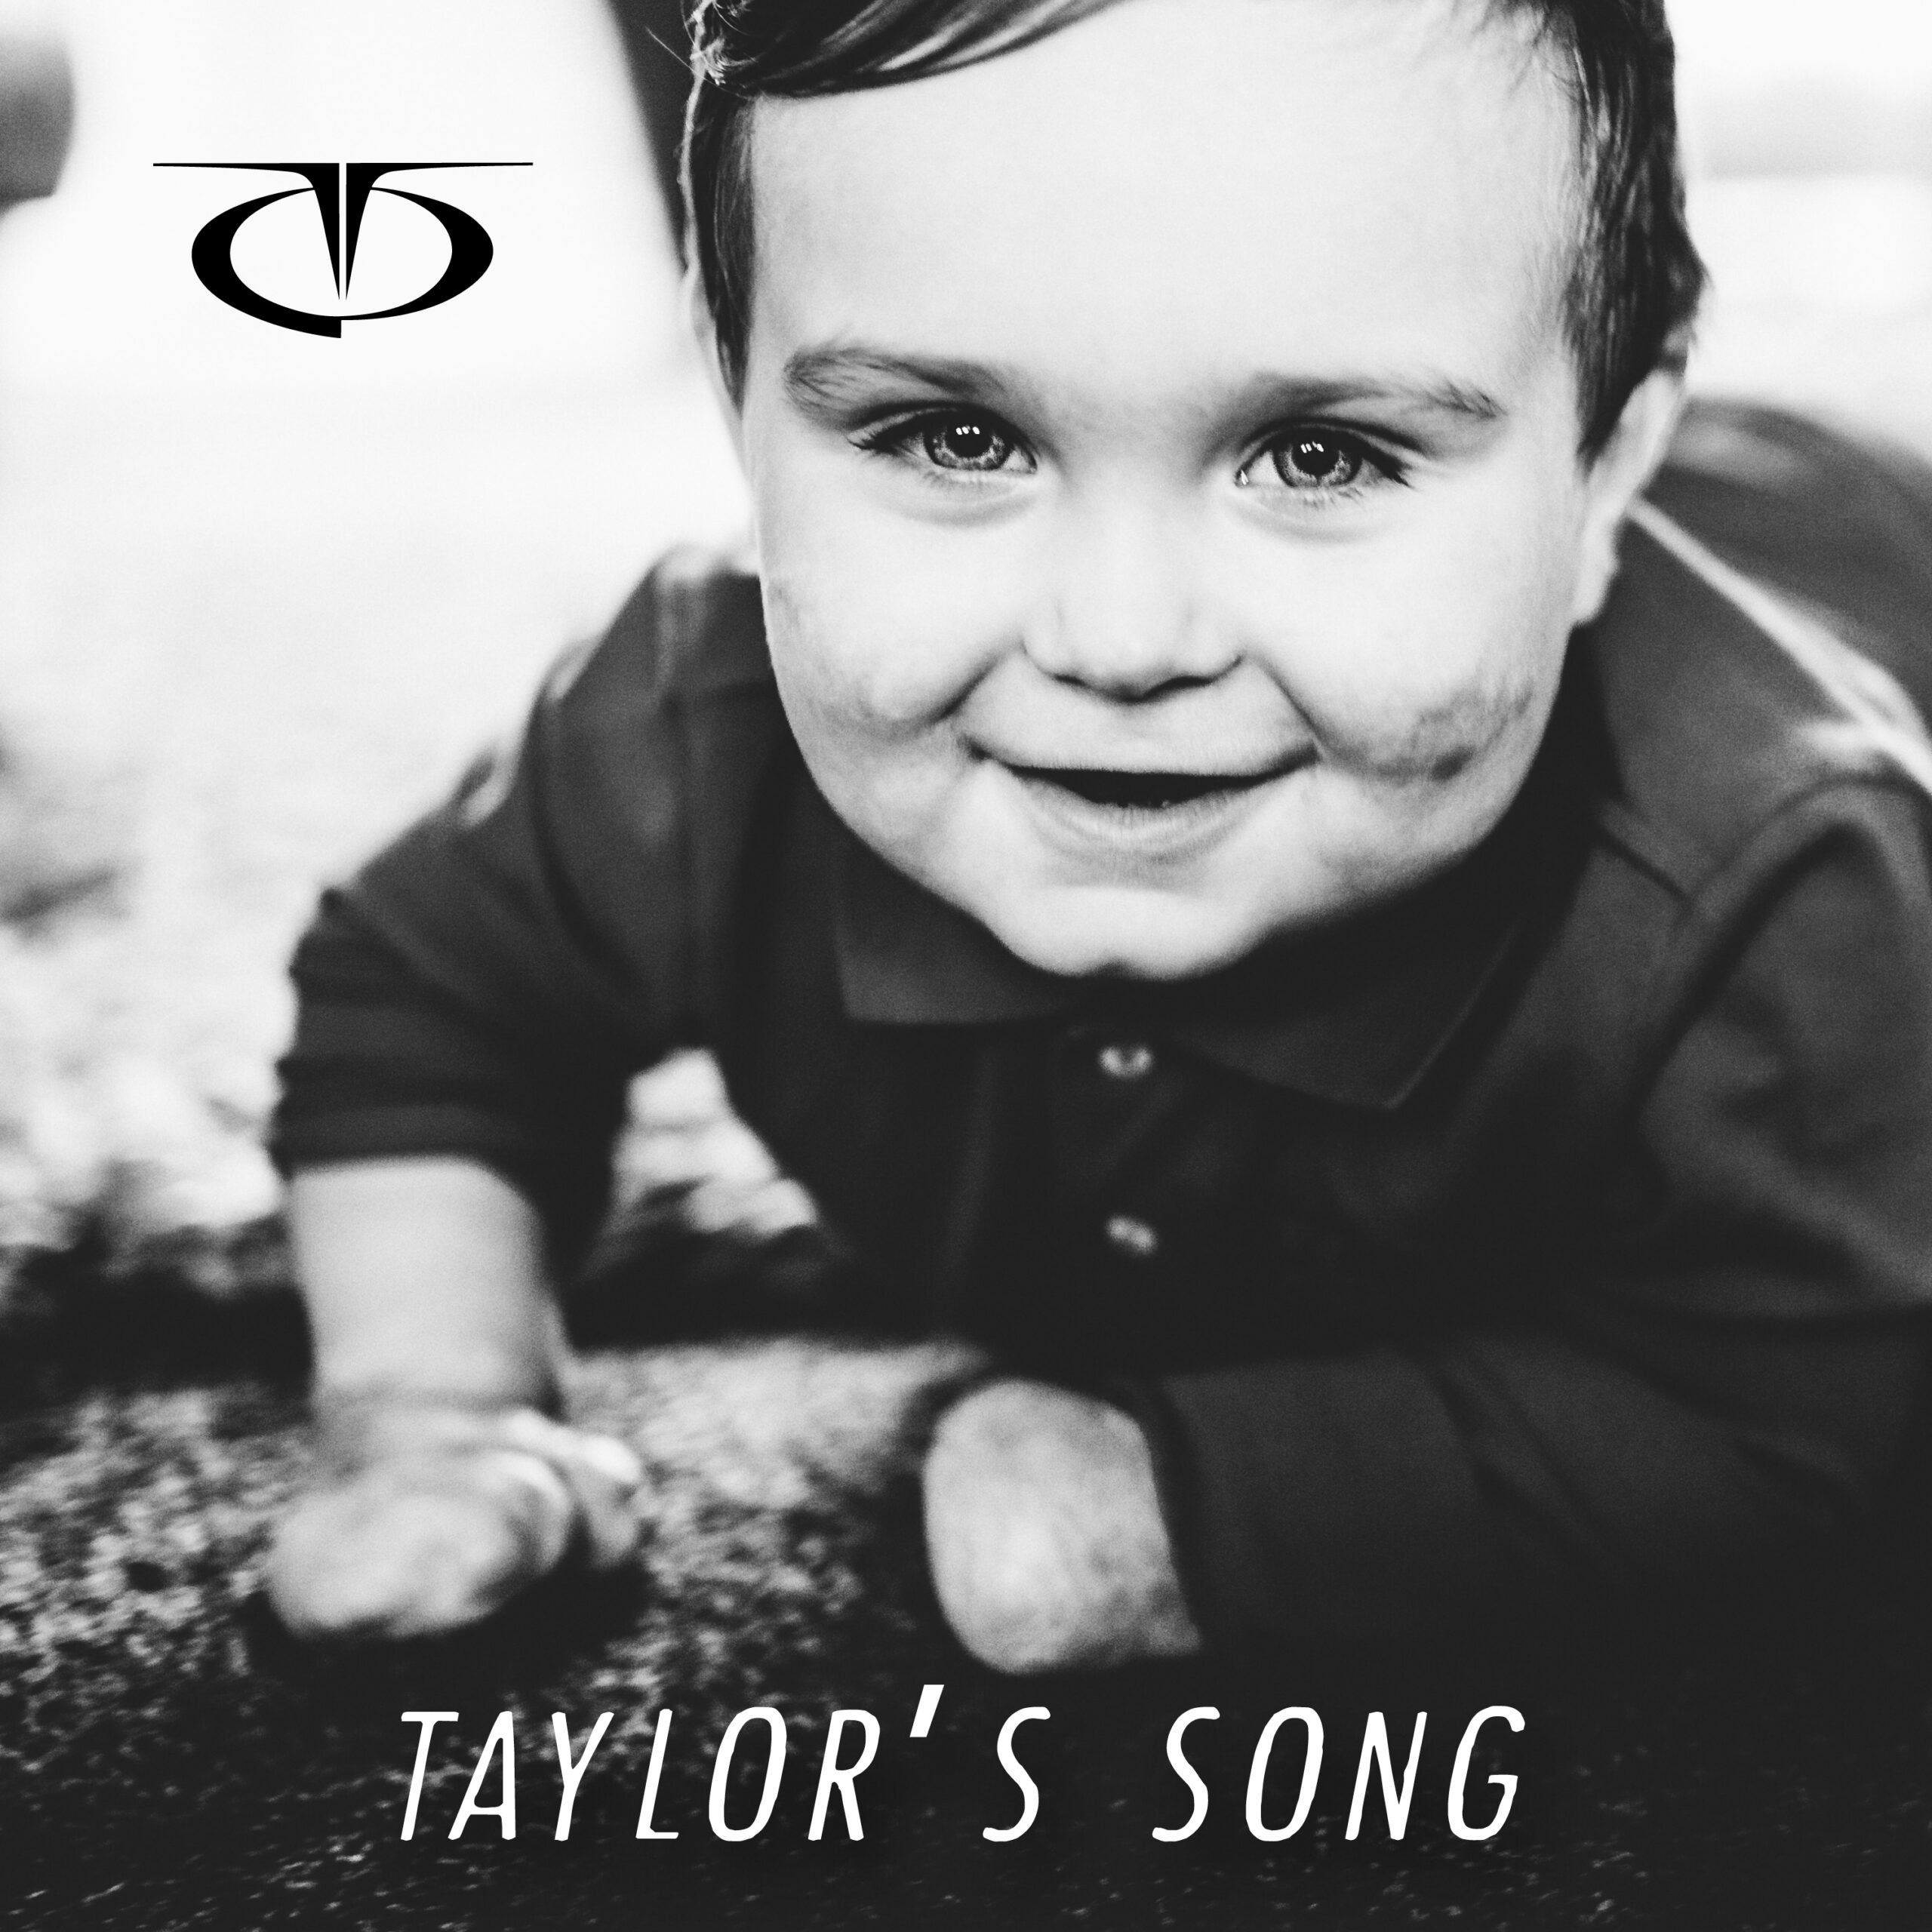 https://i0.wp.com/www.therealtq.com/wp-content/uploads/2019/01/Taylor-Cover-BW-3000x3000-scaled.jpg?fit=2560%2C2560&ssl=1